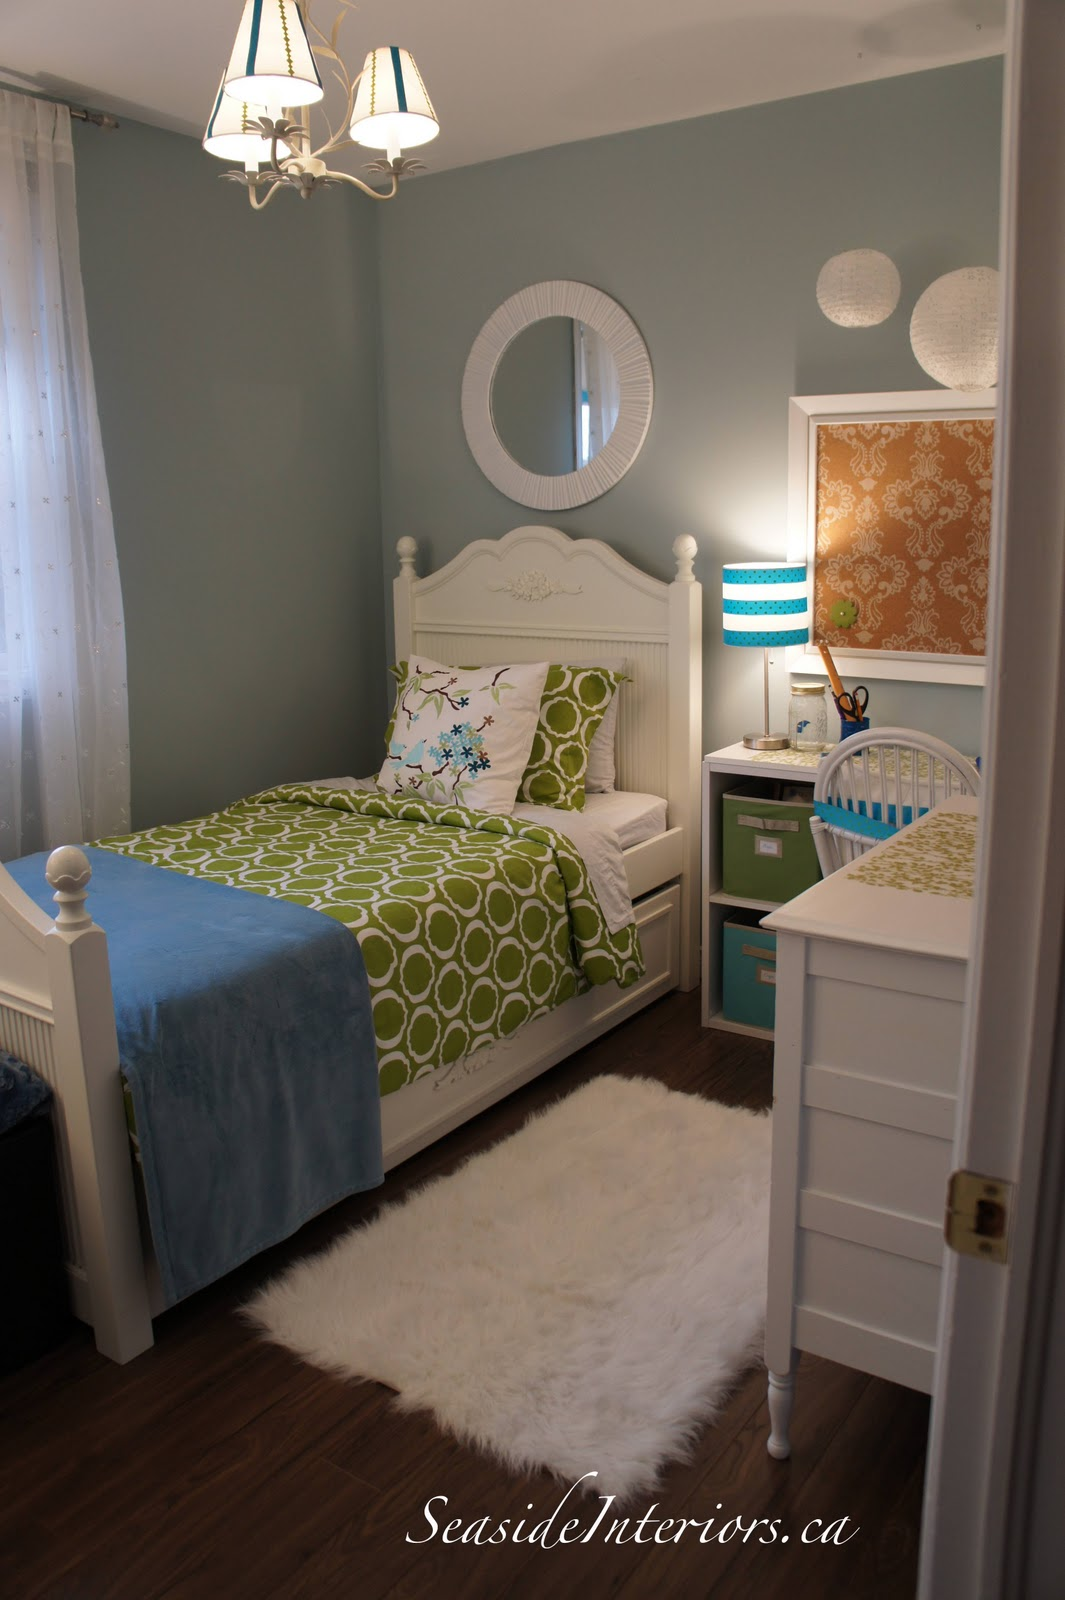 Seaside interiors going blue green girls room redo - Cute girl room ideas ...